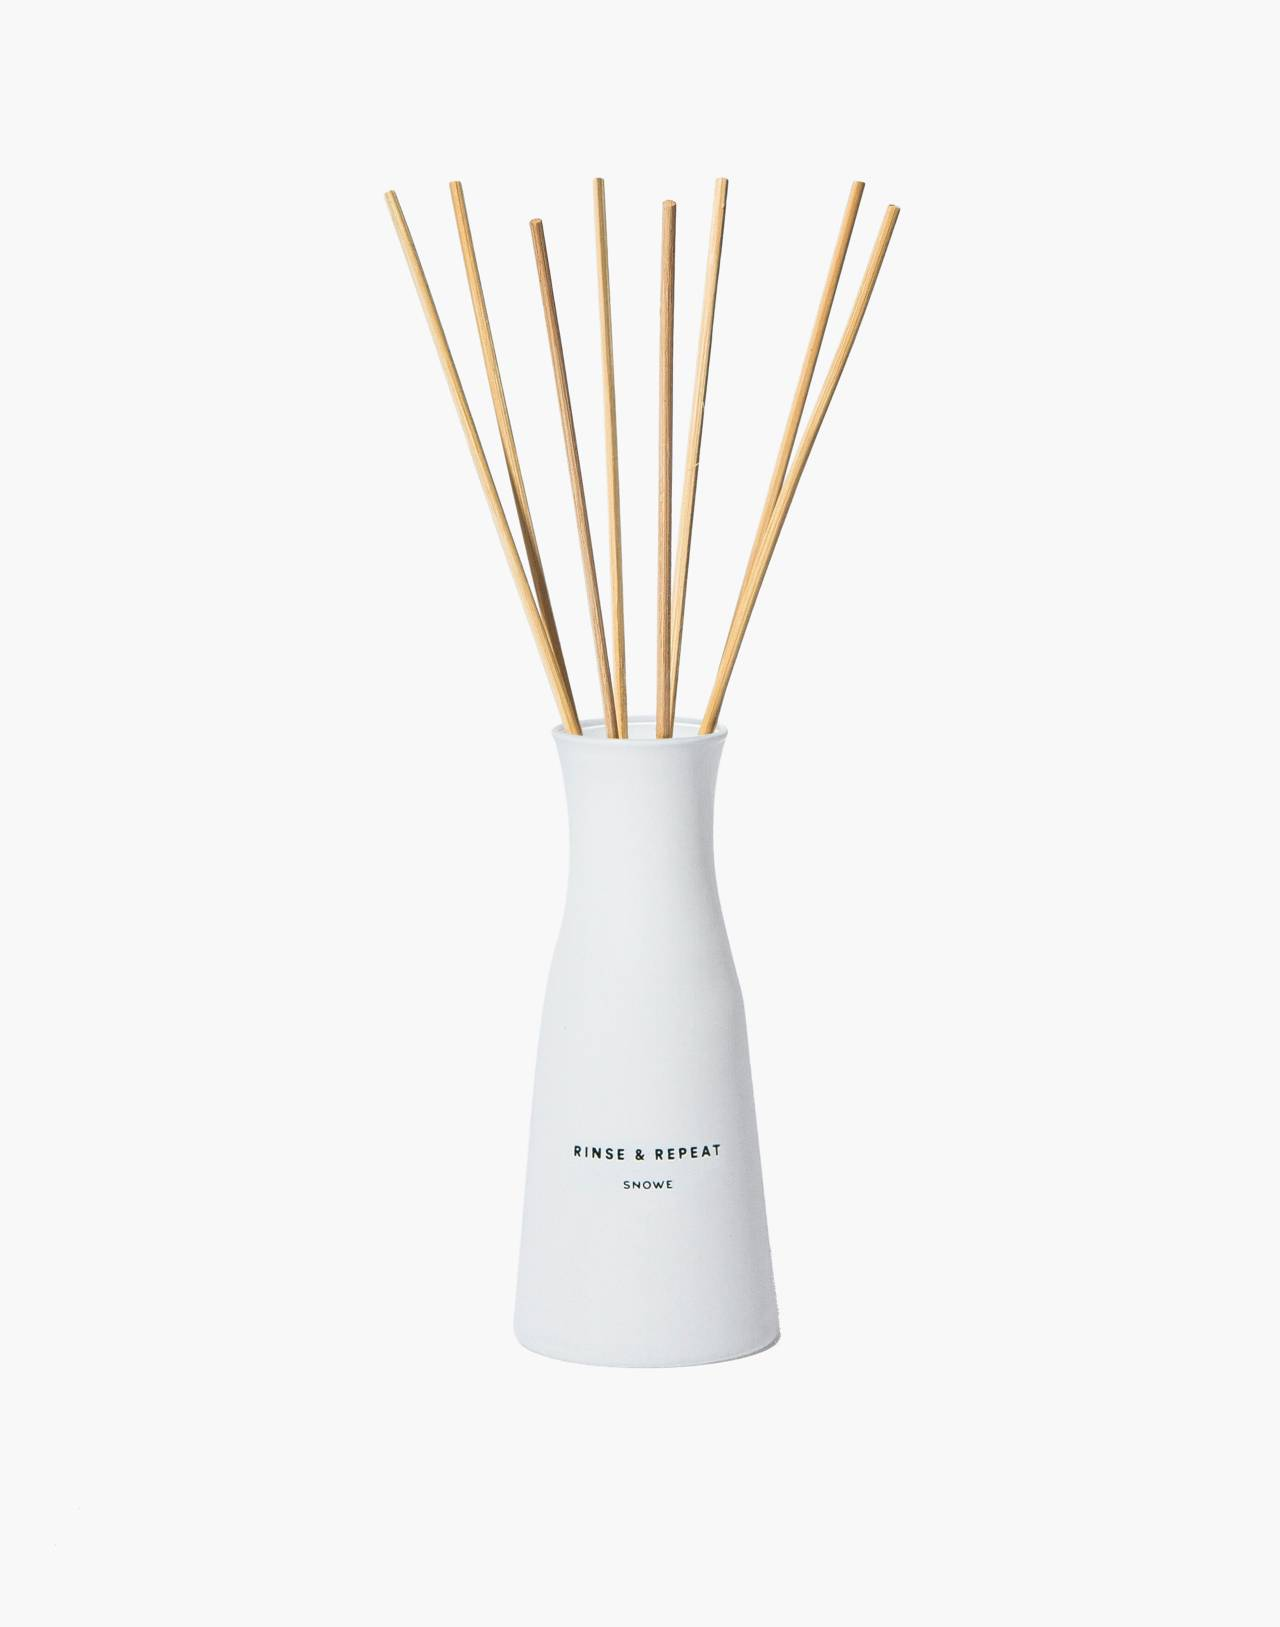 SNOWE™ Rinse and Repeat Diffuser Set in one color image 2